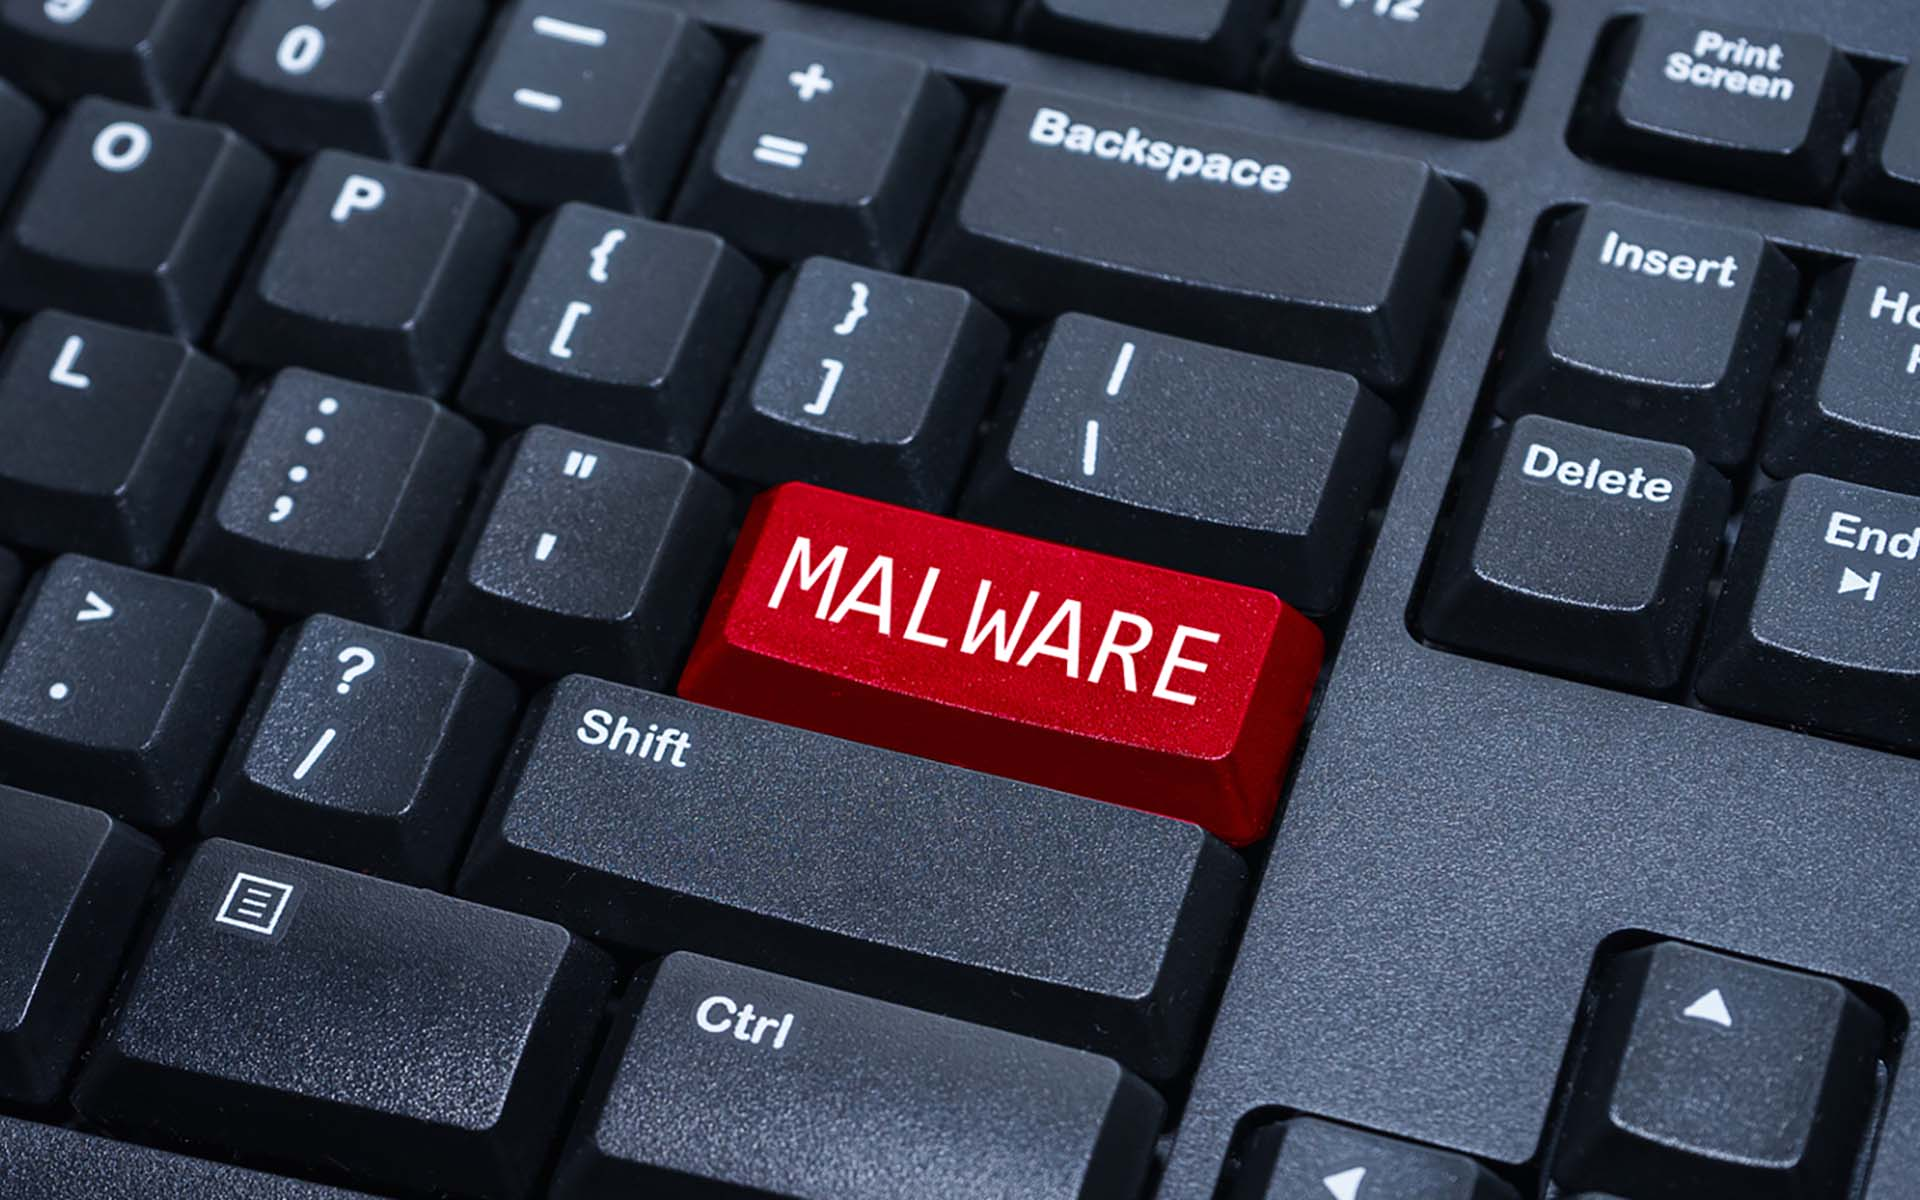 Cryptocurrency Malware ComboJack Targets Clipboard Data - Here's How to Protect Yourself